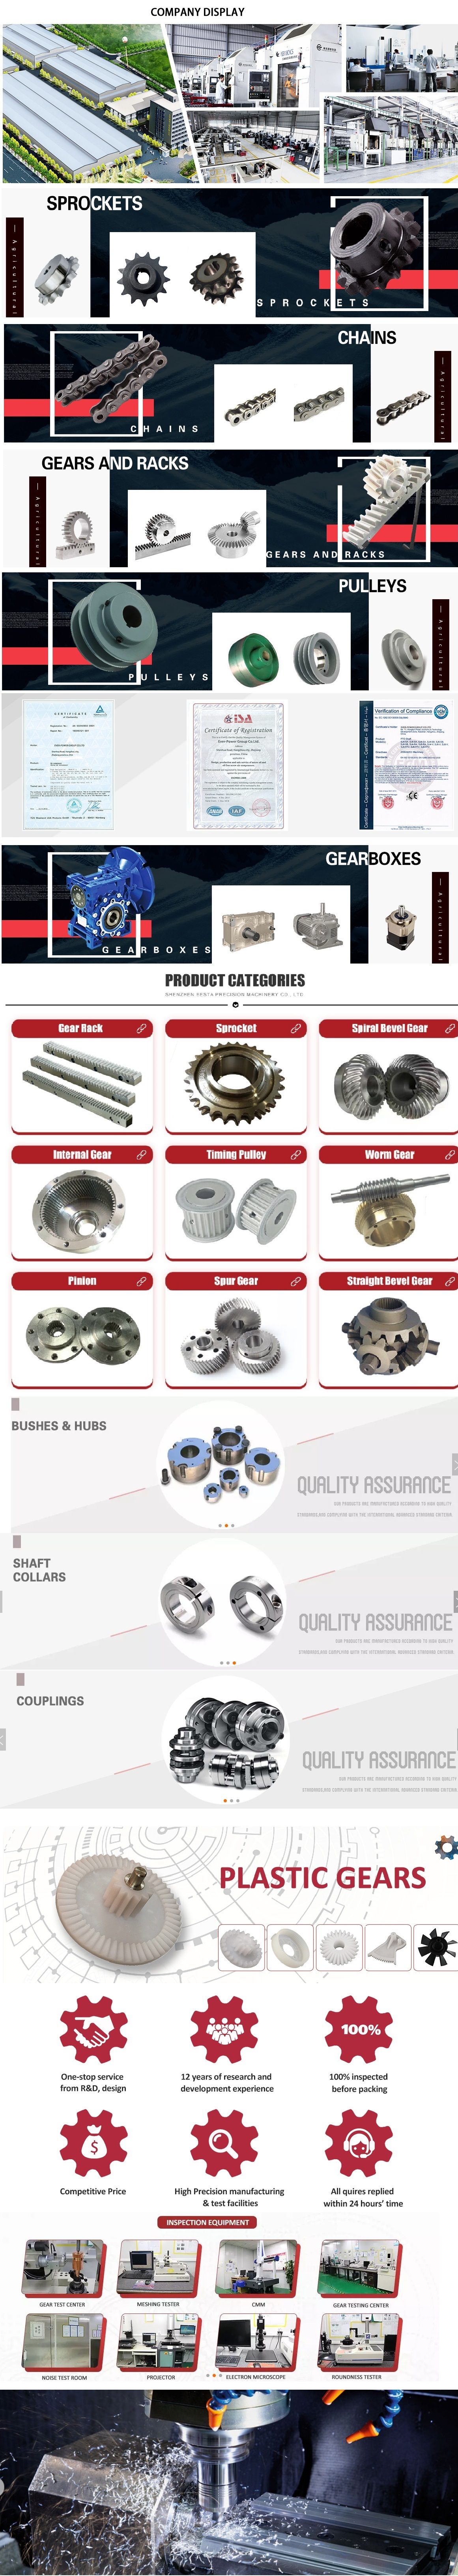 in Mbeya United Republic of Tanzania  sales   price   shop   near me   near me shop   factory   supplier Slewing Bearing China Factory Crane & Excavator Slewing Ring Bearing Gear manufacturer   best   Cost   Custom   Cheap   wholesaler